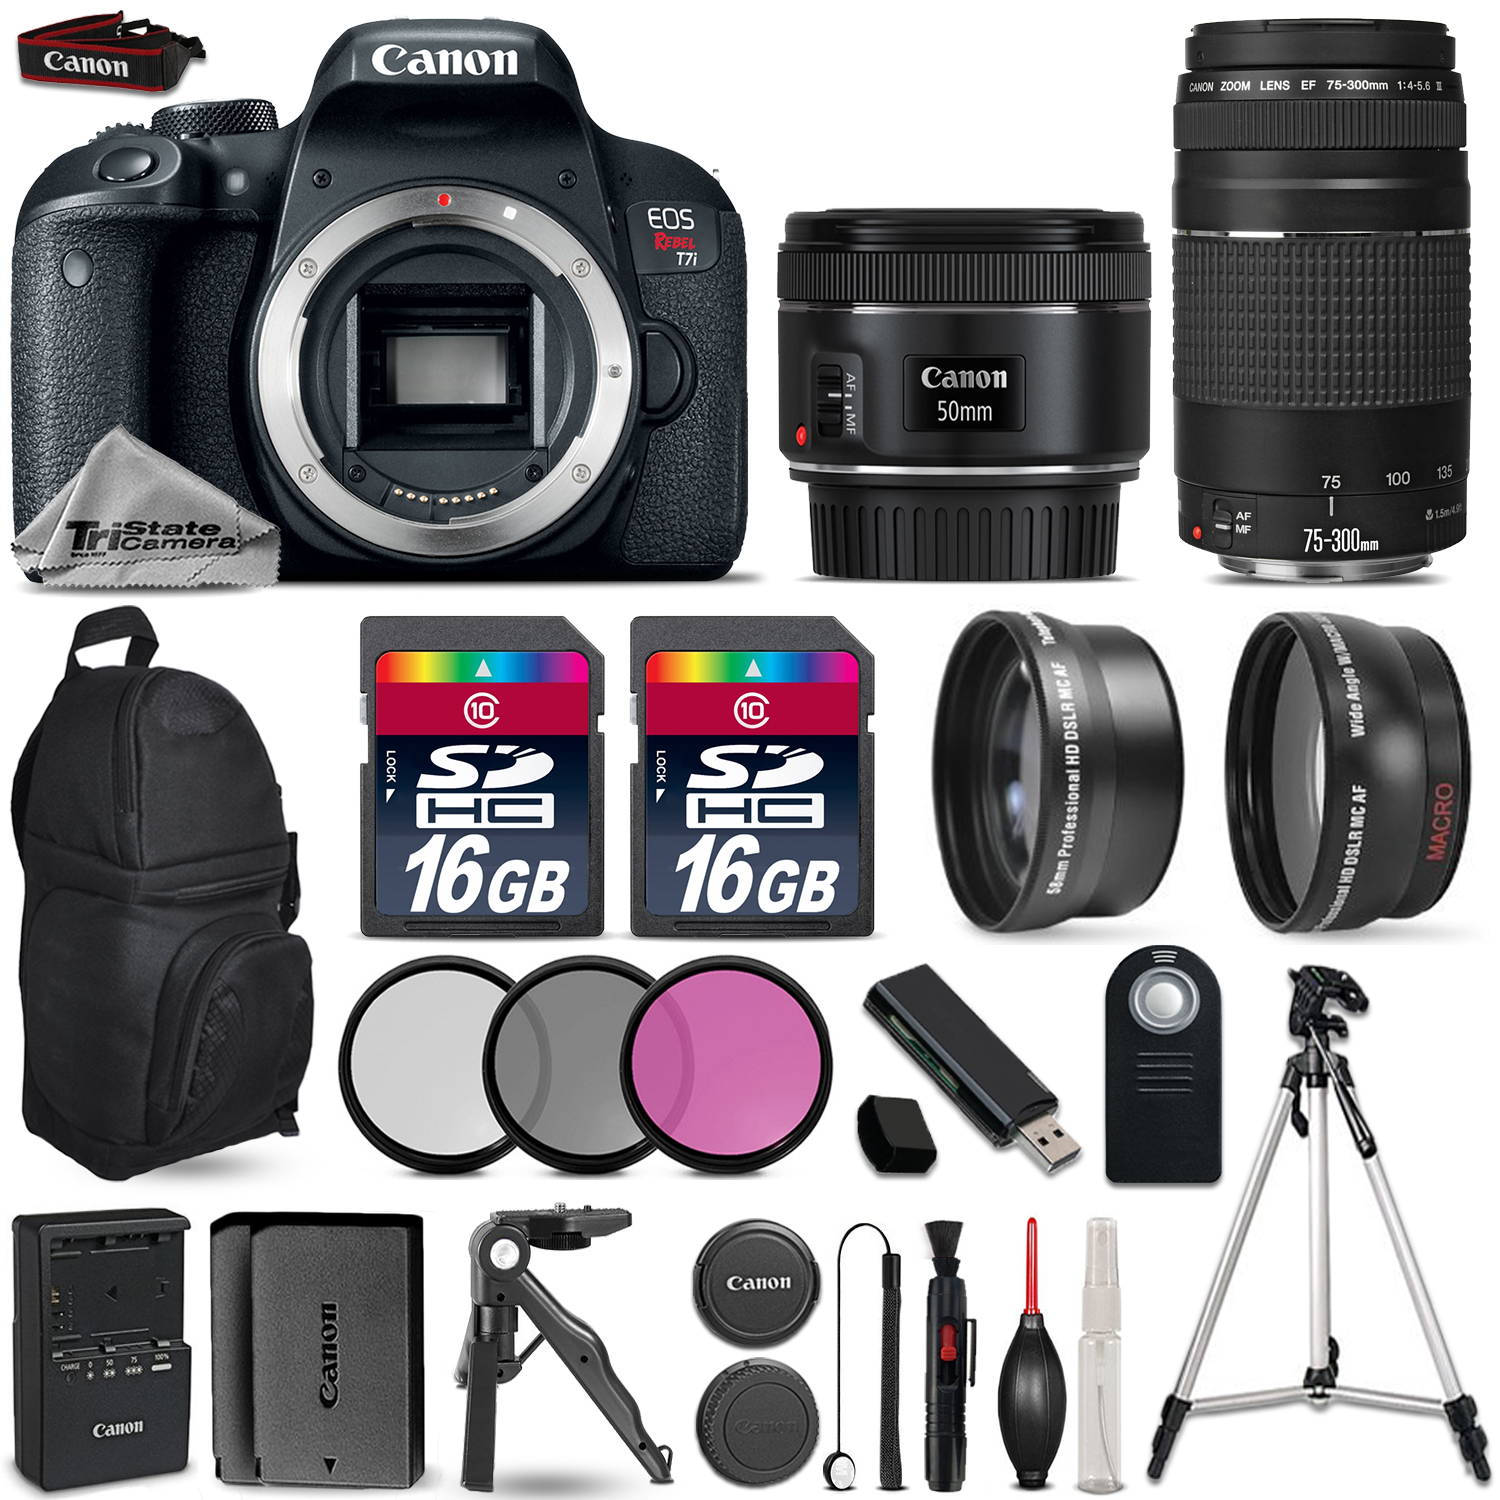 EOS Rebel T7i Camera + 50mm 1.8 STM + 75-300mm + EXT BAT + Backpack + 32GB *FREE SHIPPING*